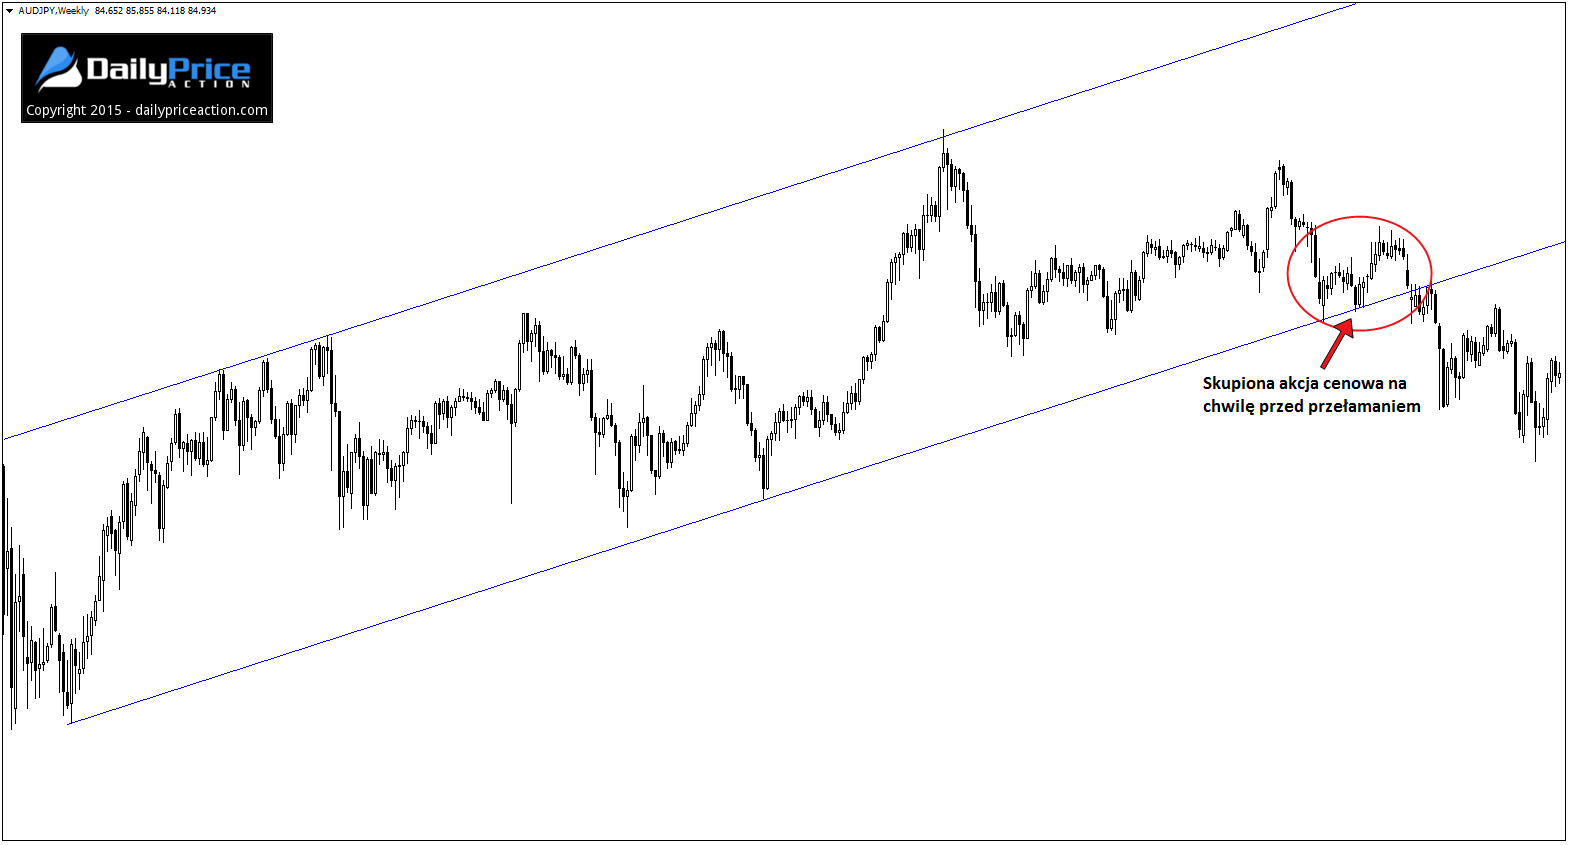 AUDJPY-clustering-price-action1 (1)sdf